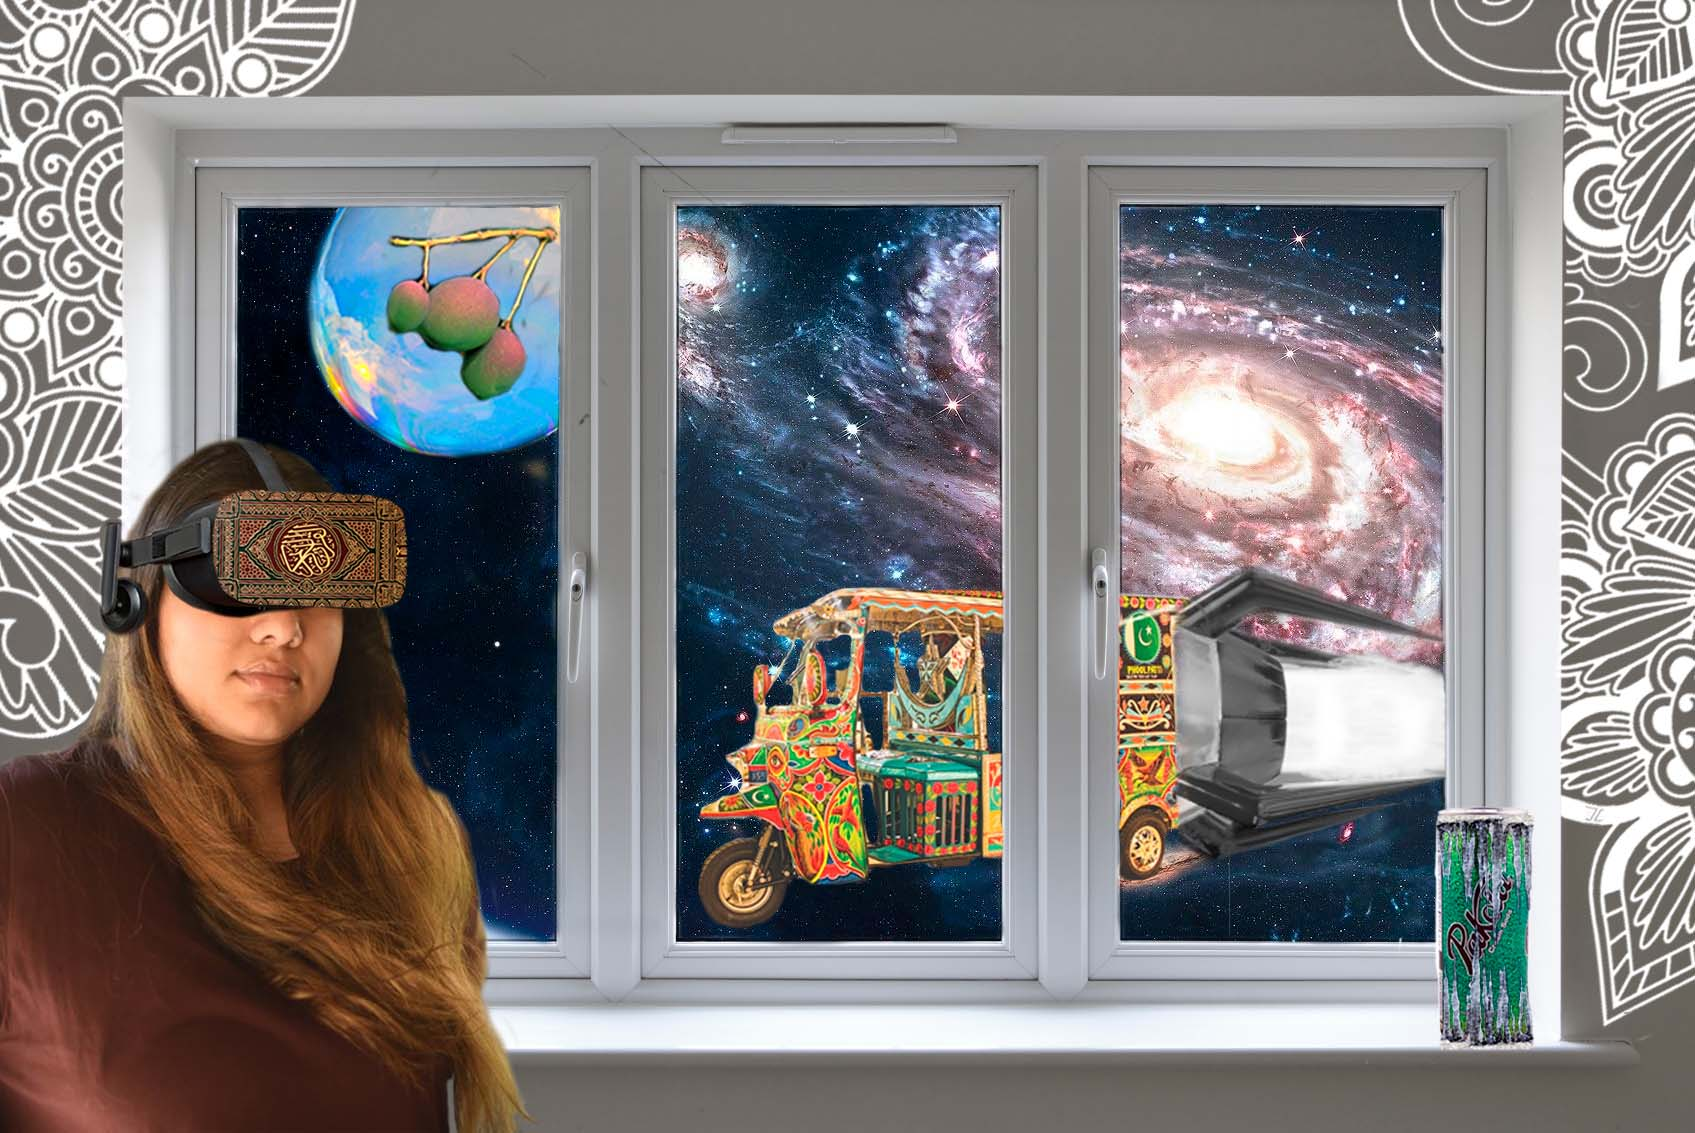 Image of a girl and space